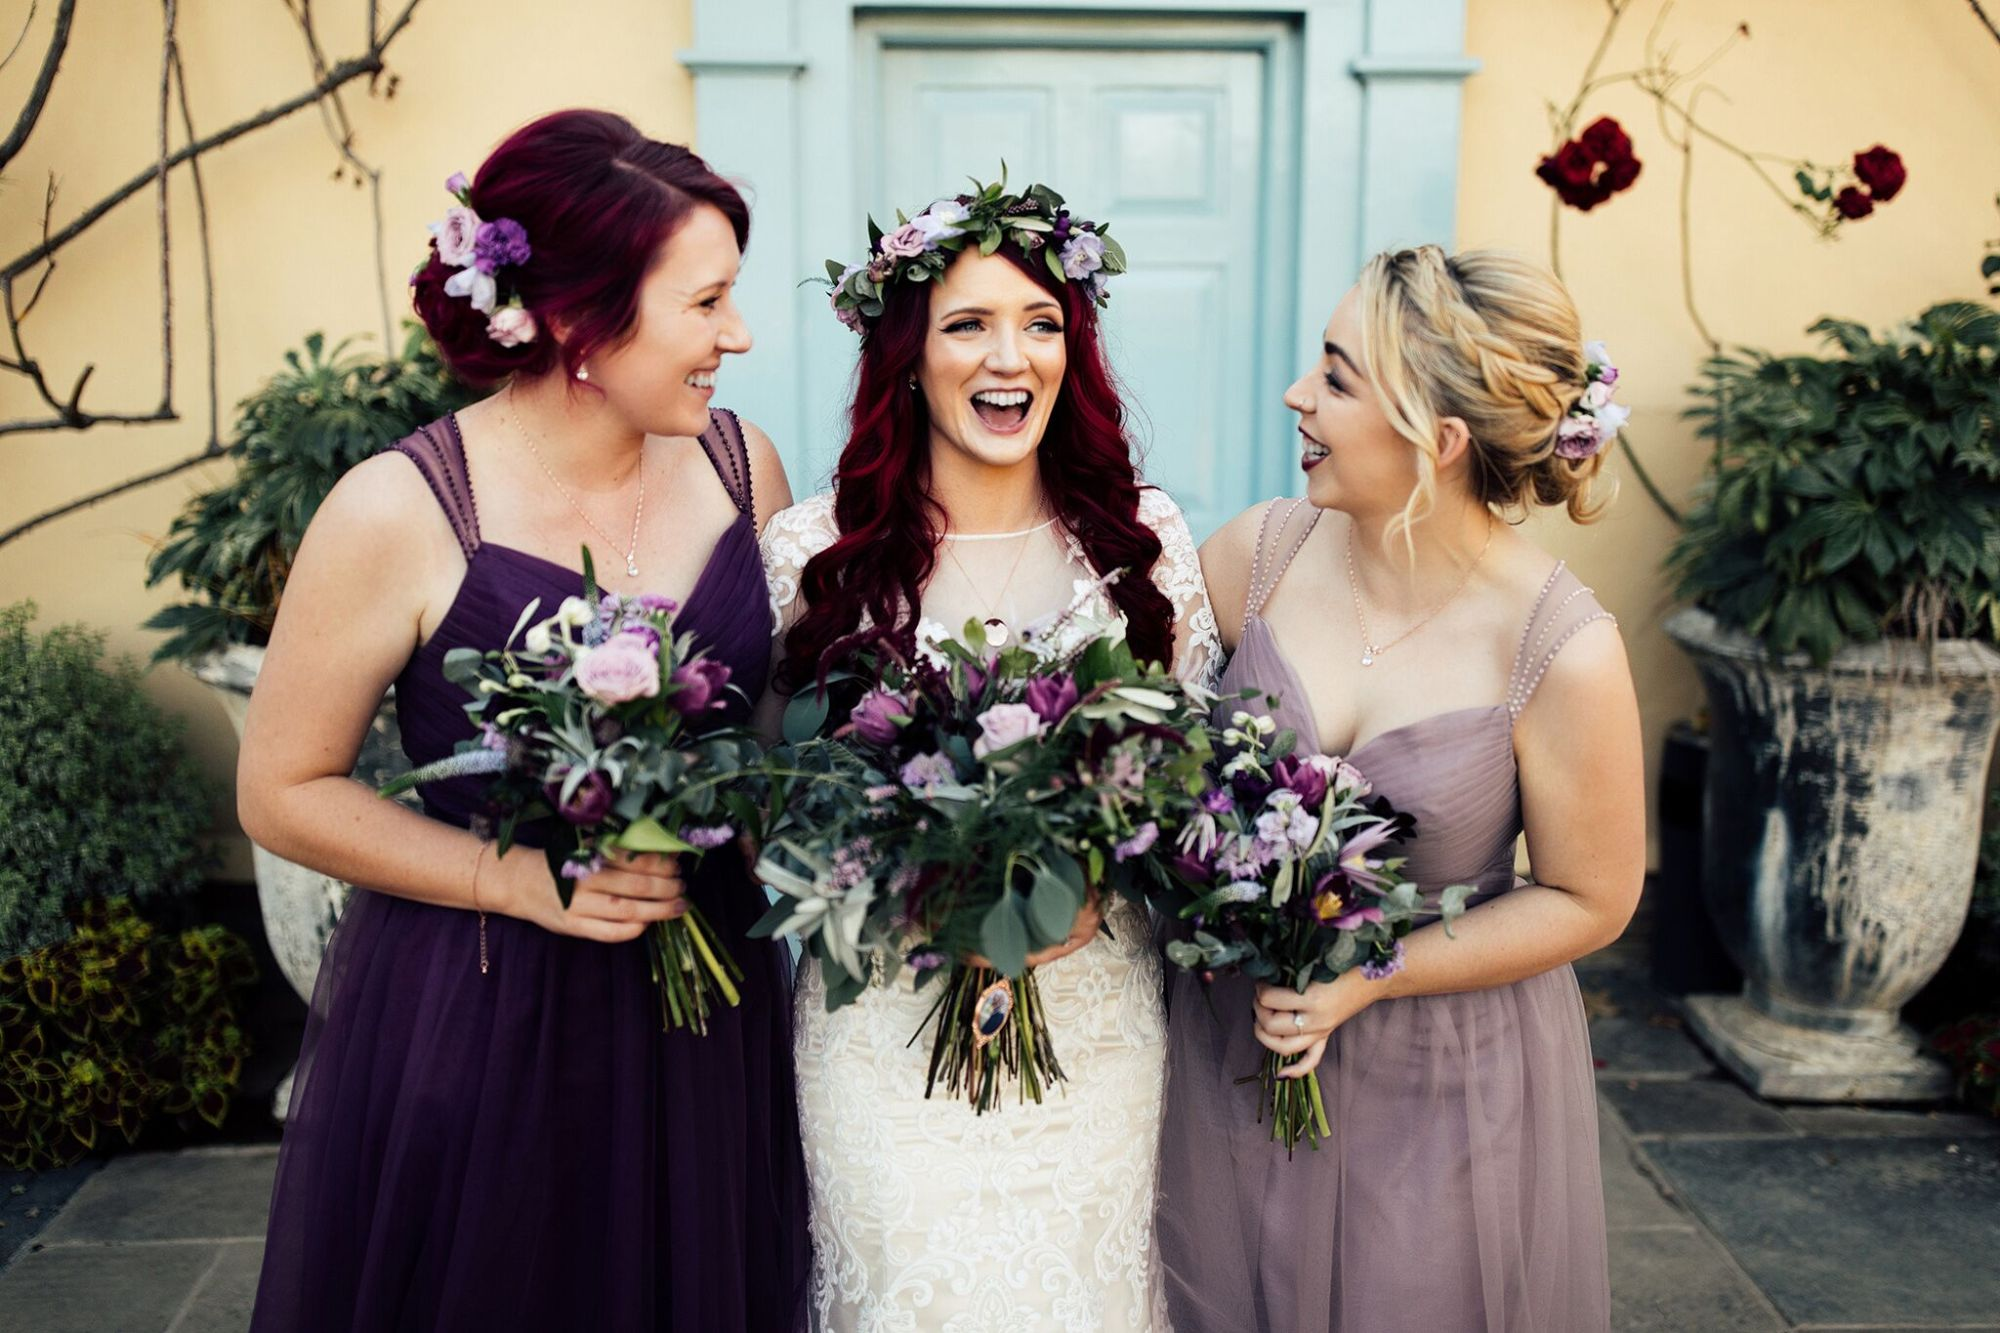 Beki bride and bridesmaids bouquet hair crown and flowers professional phot